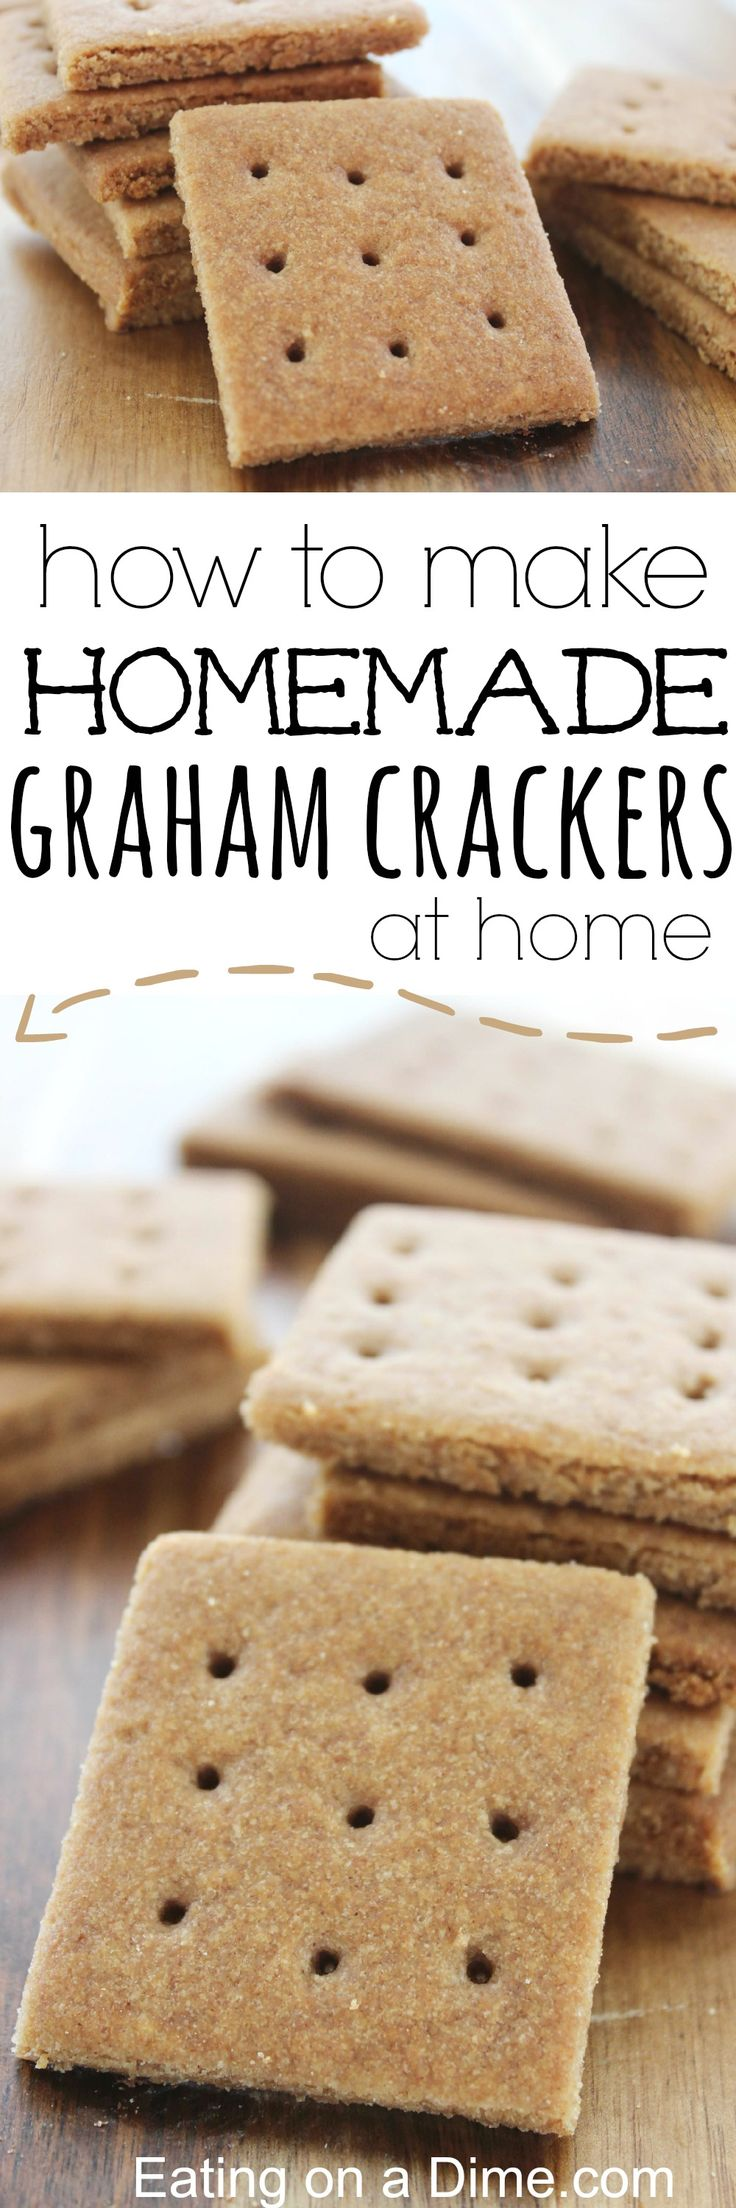 how to make homemade craham crackers at home